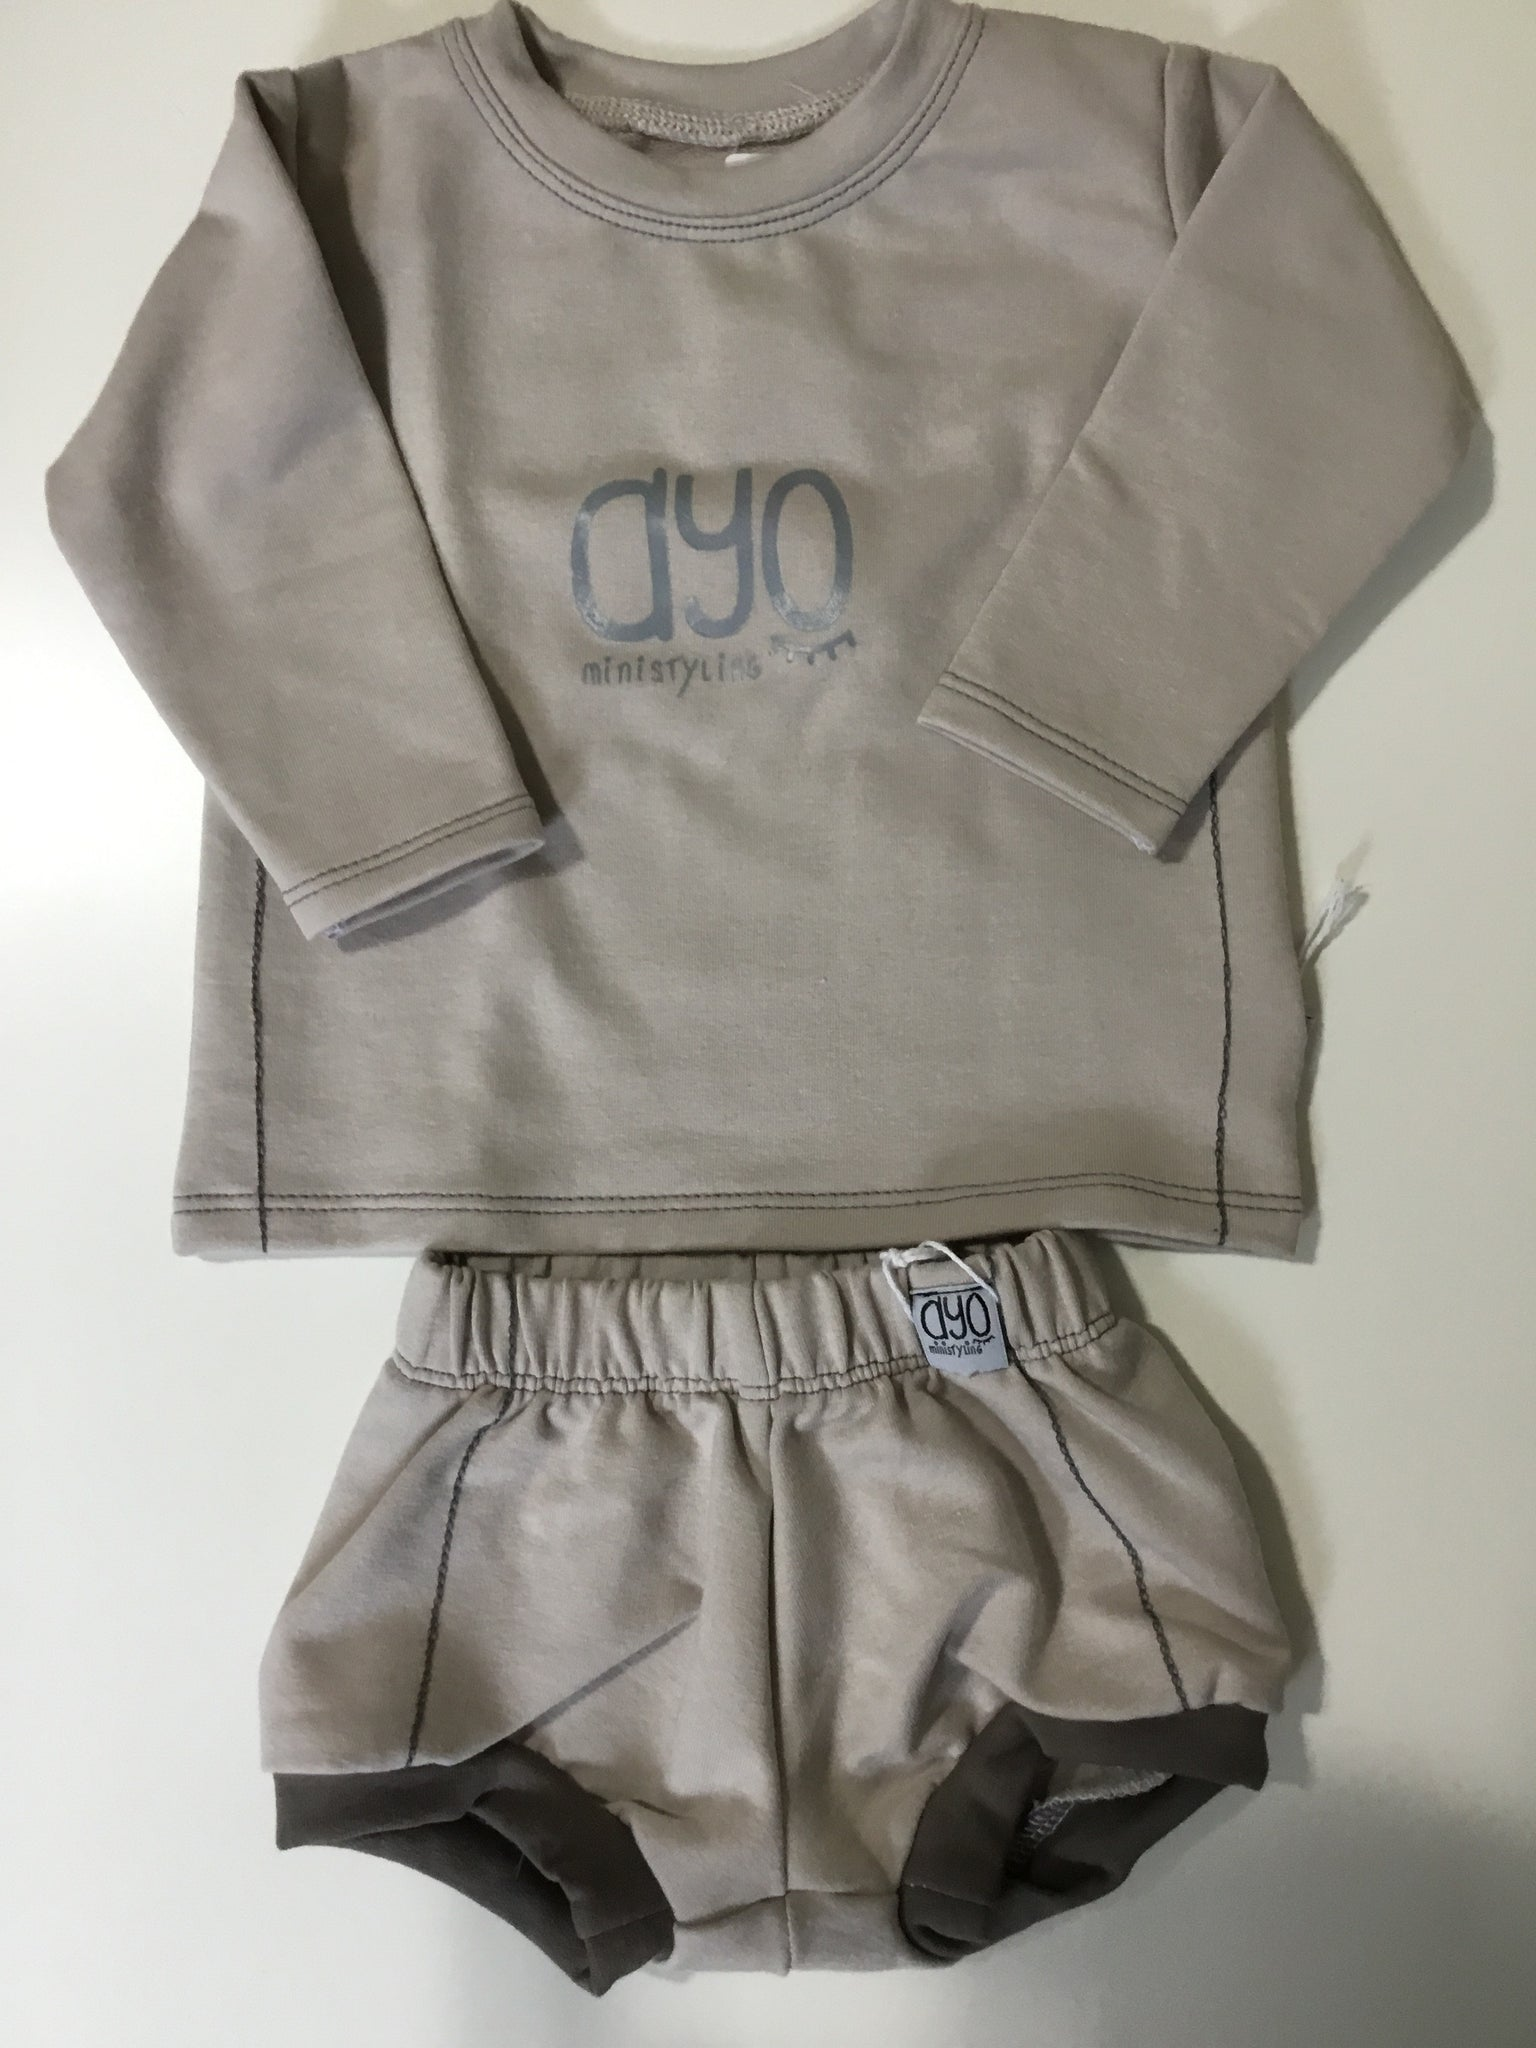 Dyo top & bloomers